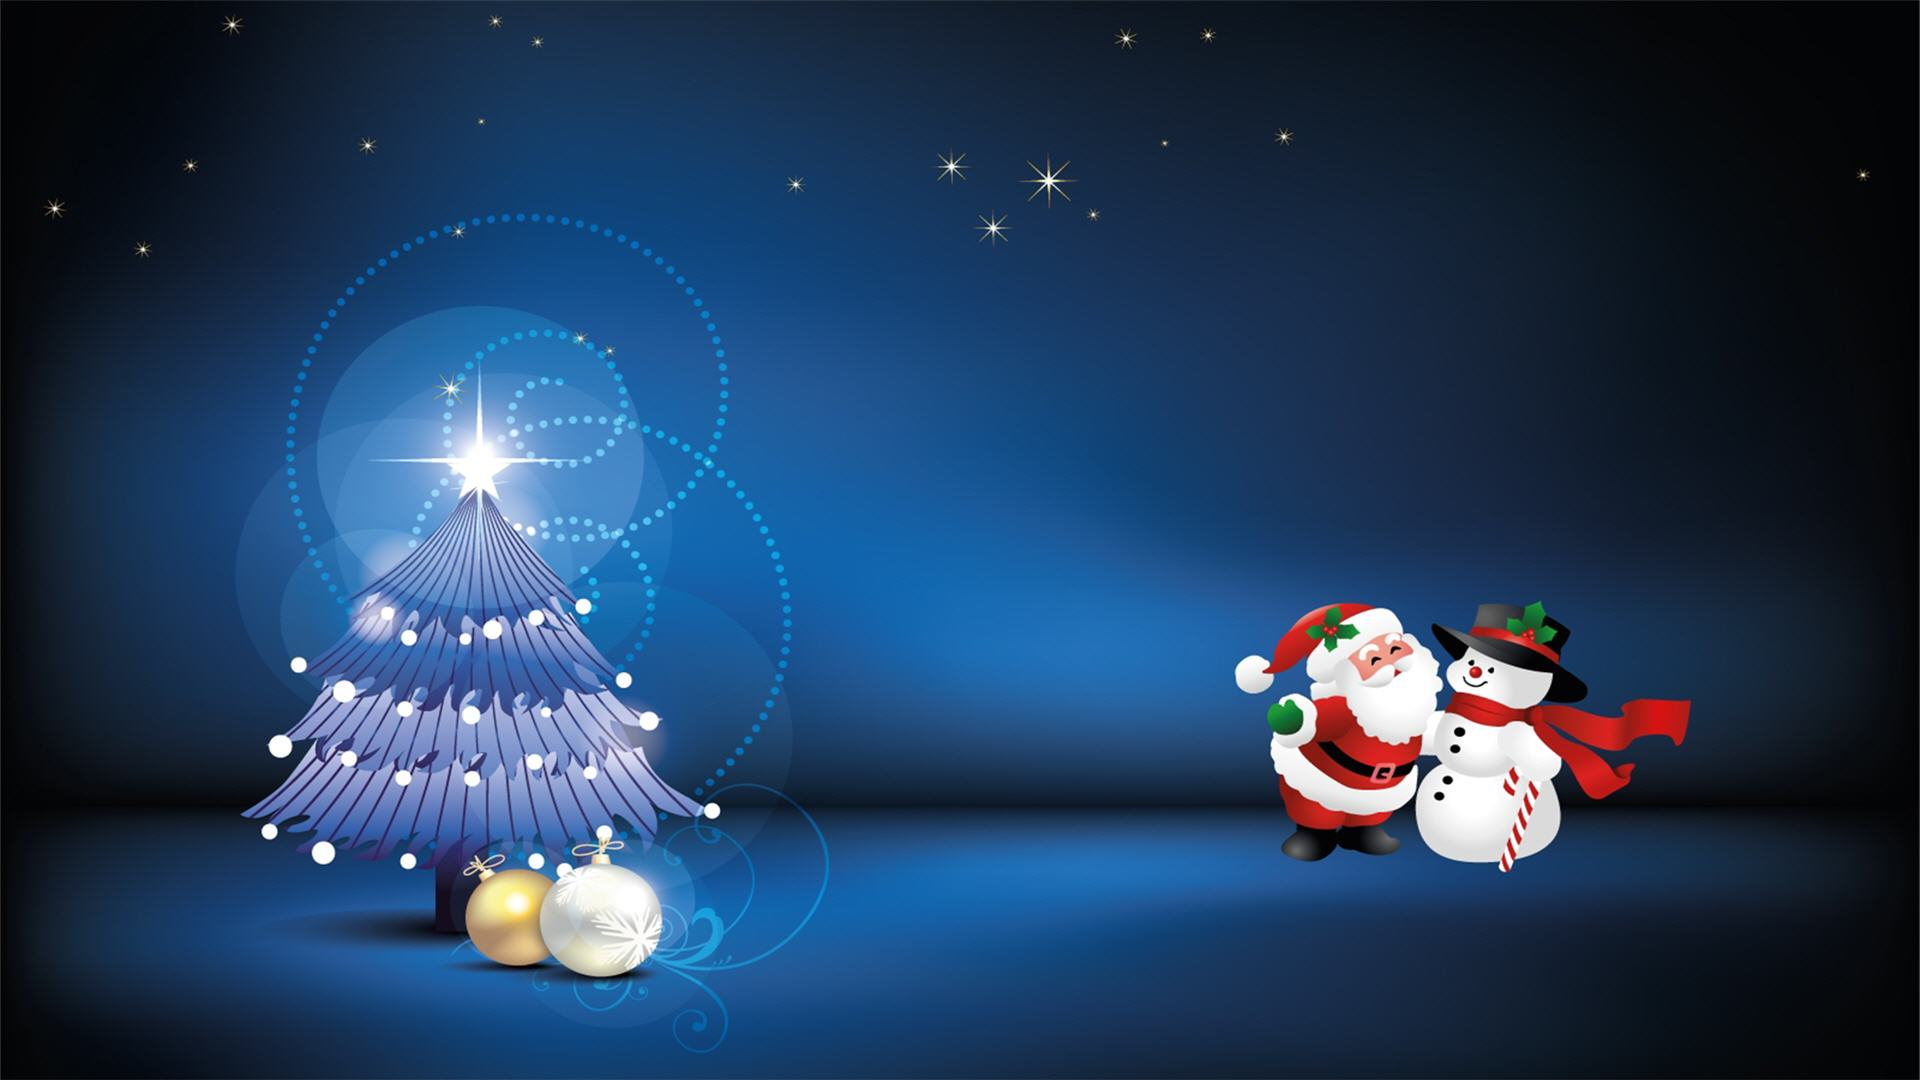 Free Hd Christmas Wallpapers Desktop Backgrounds 2016